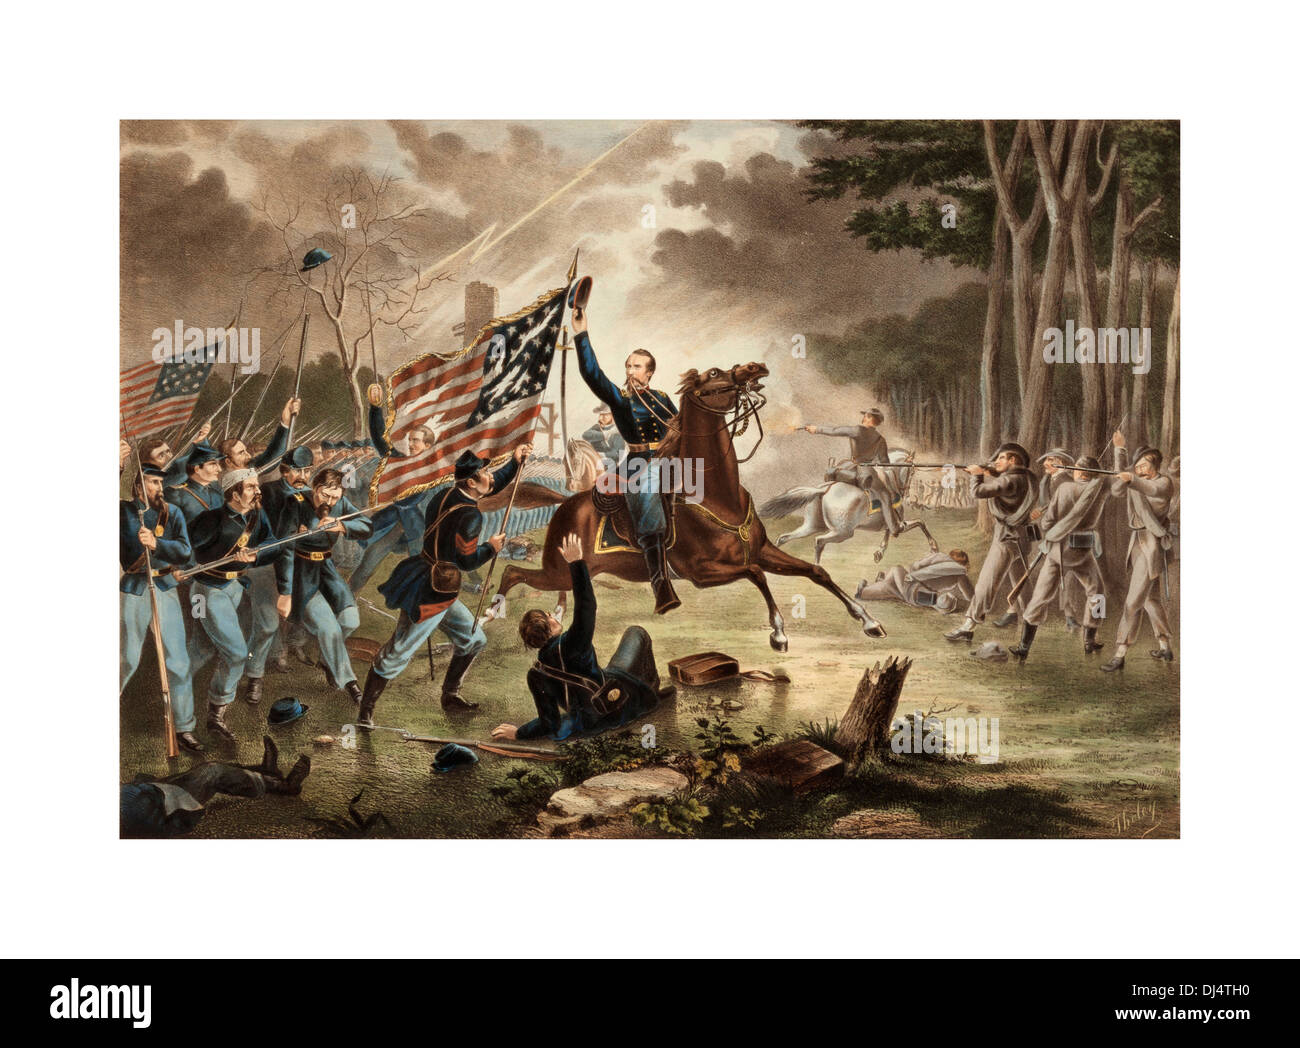 American Civil War 1861-1865 Oil on canvas General Kearney battle of Chantilly 1862 where confederate army won the day - Stock Image